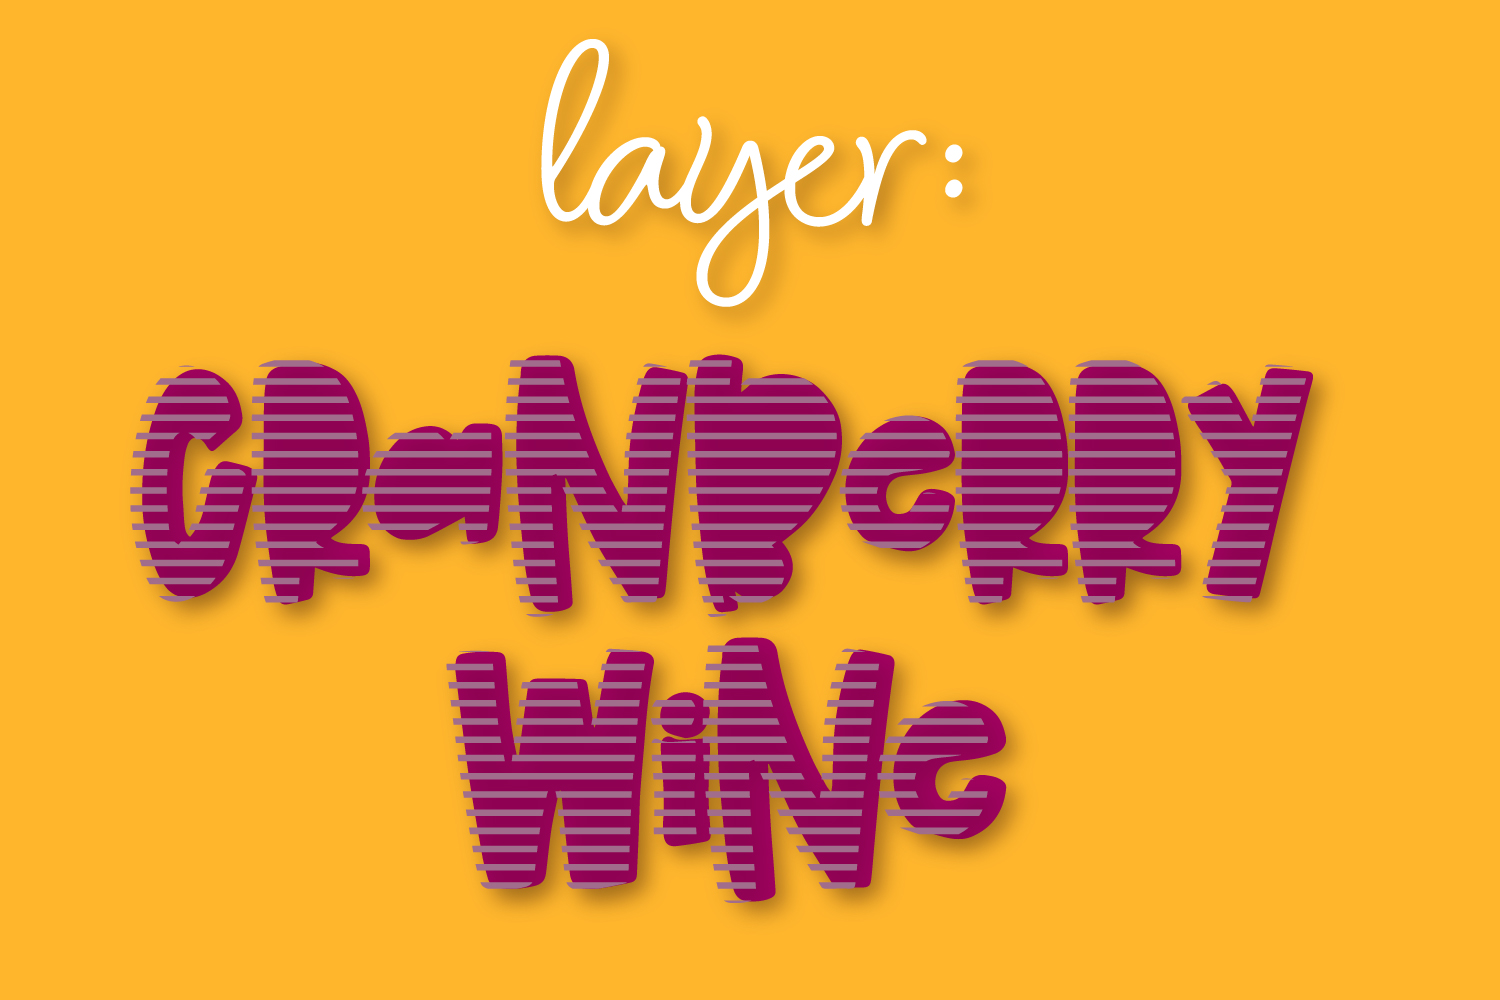 Cranberry Wine - A Striped Font Family of 6 New Fonts! example image 9